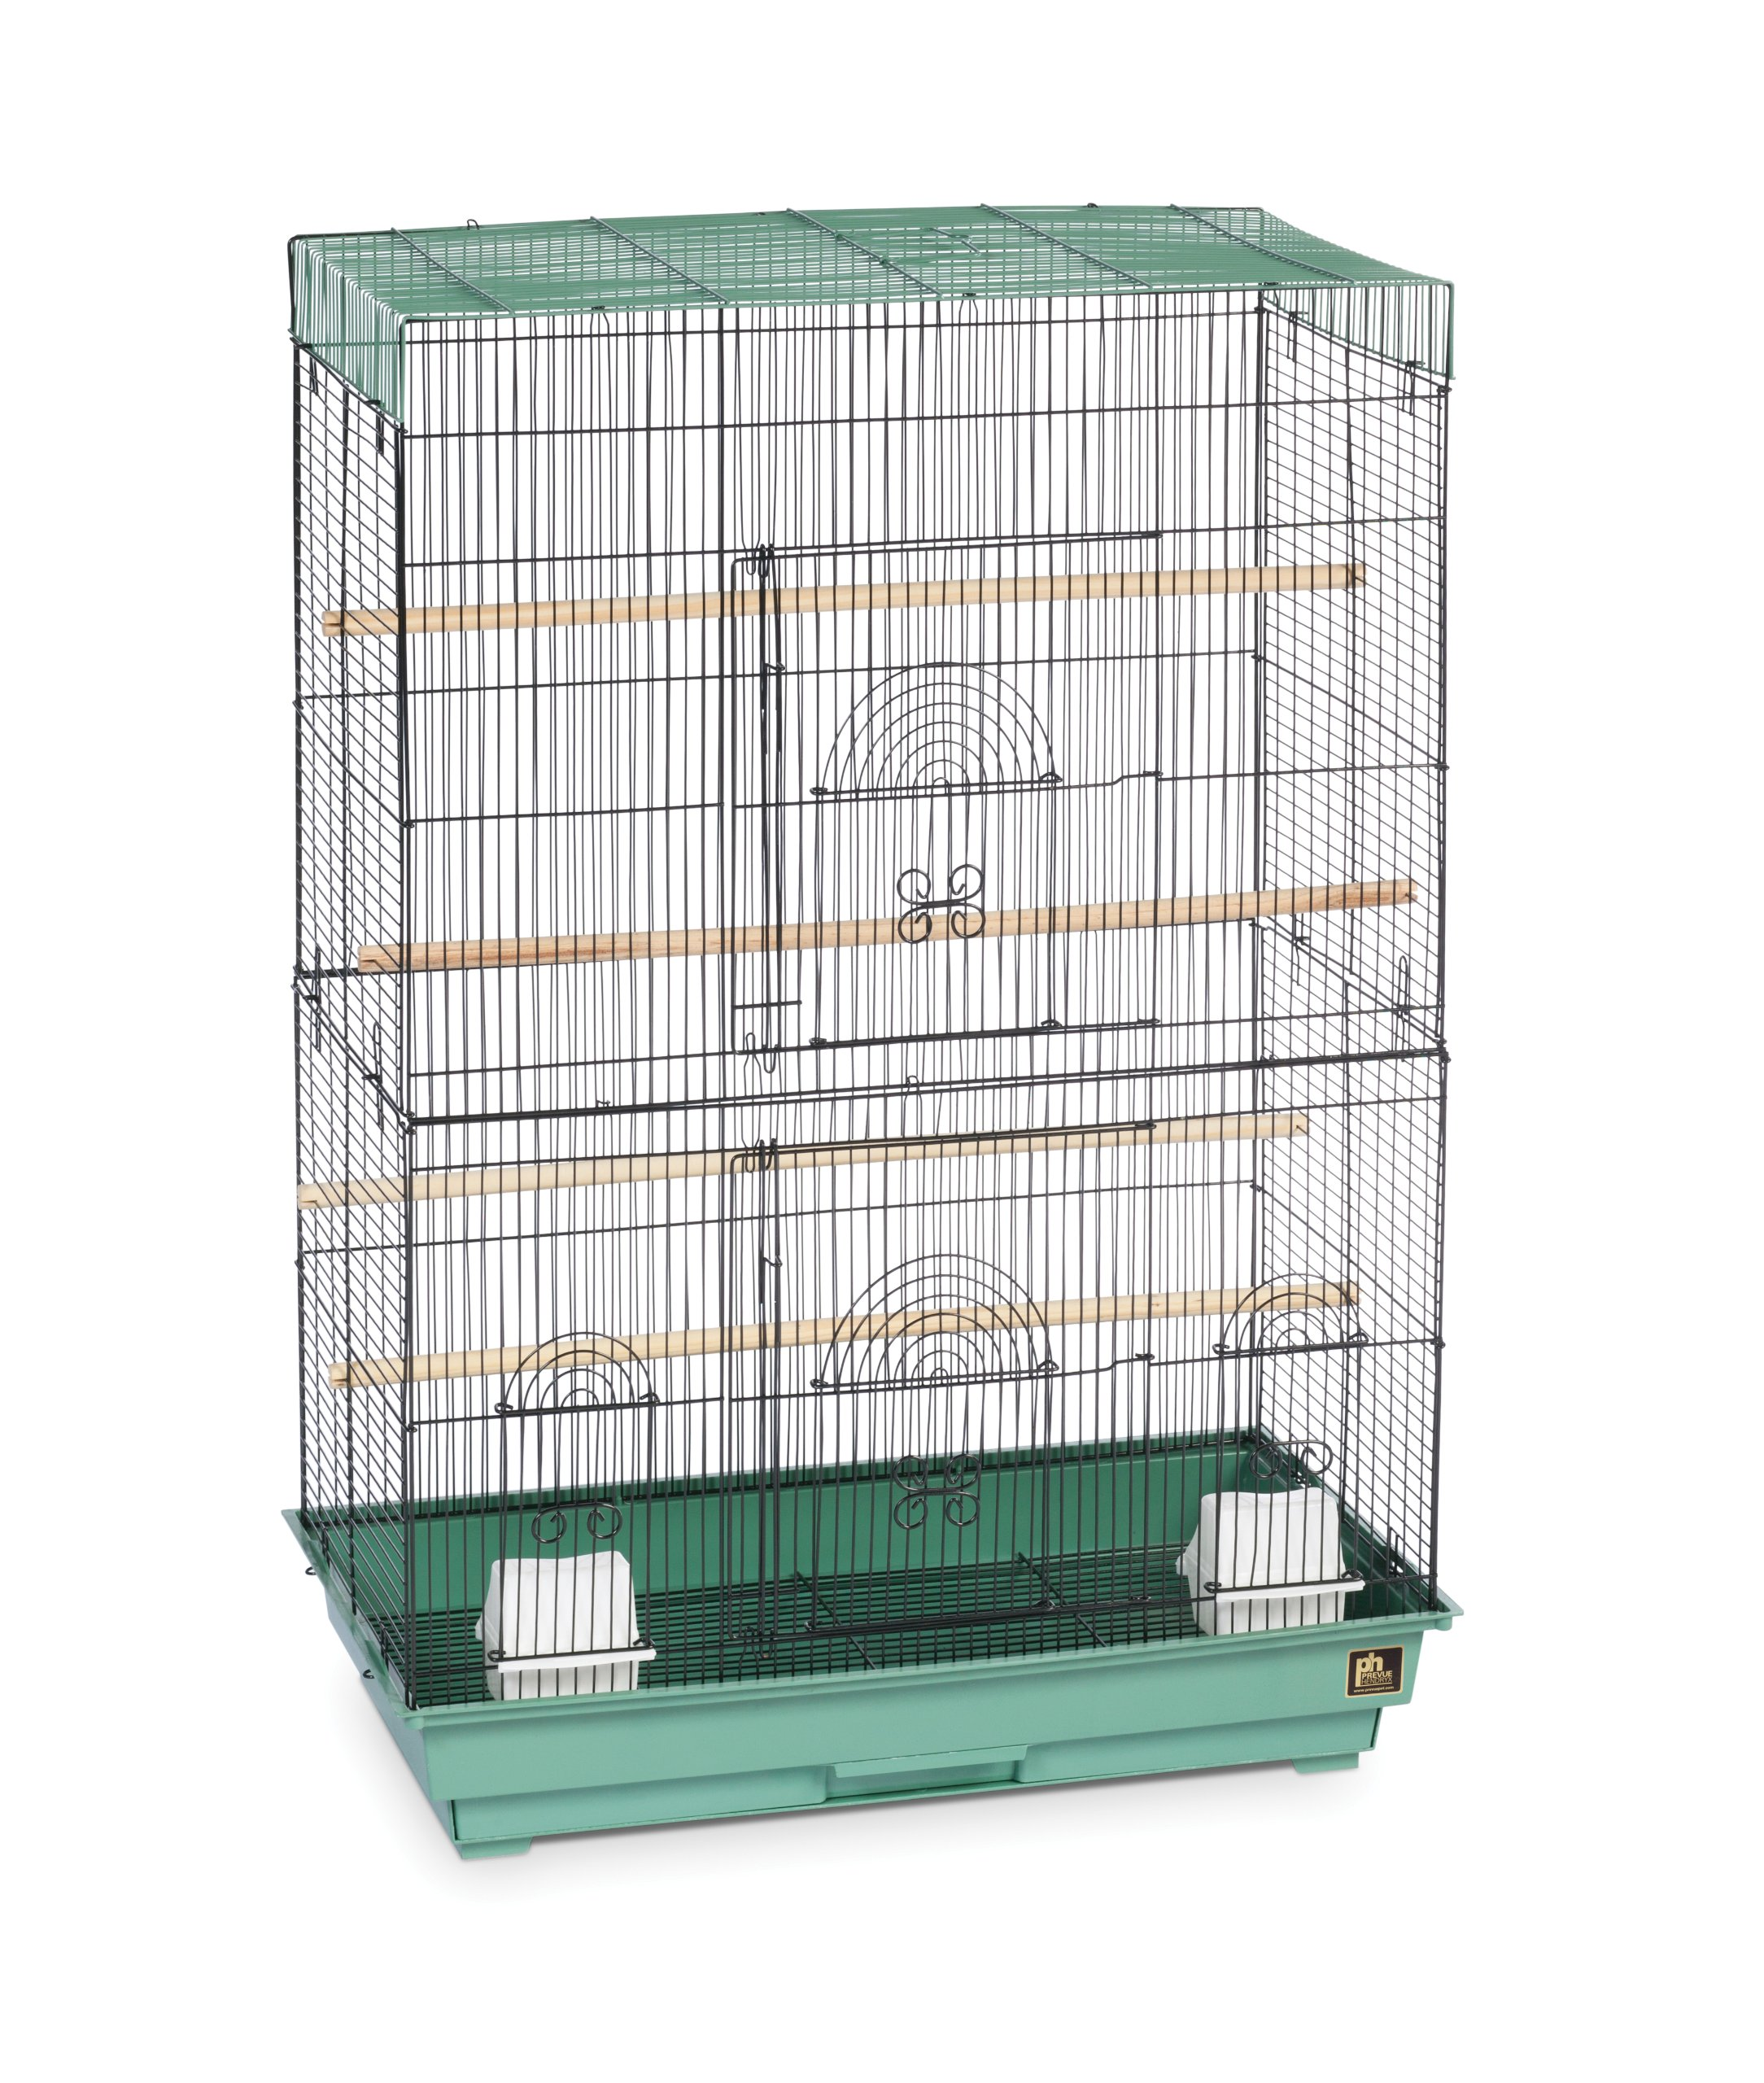 Prevue Hendryx Flight Cage, Green and Black by Prevue Hendryx